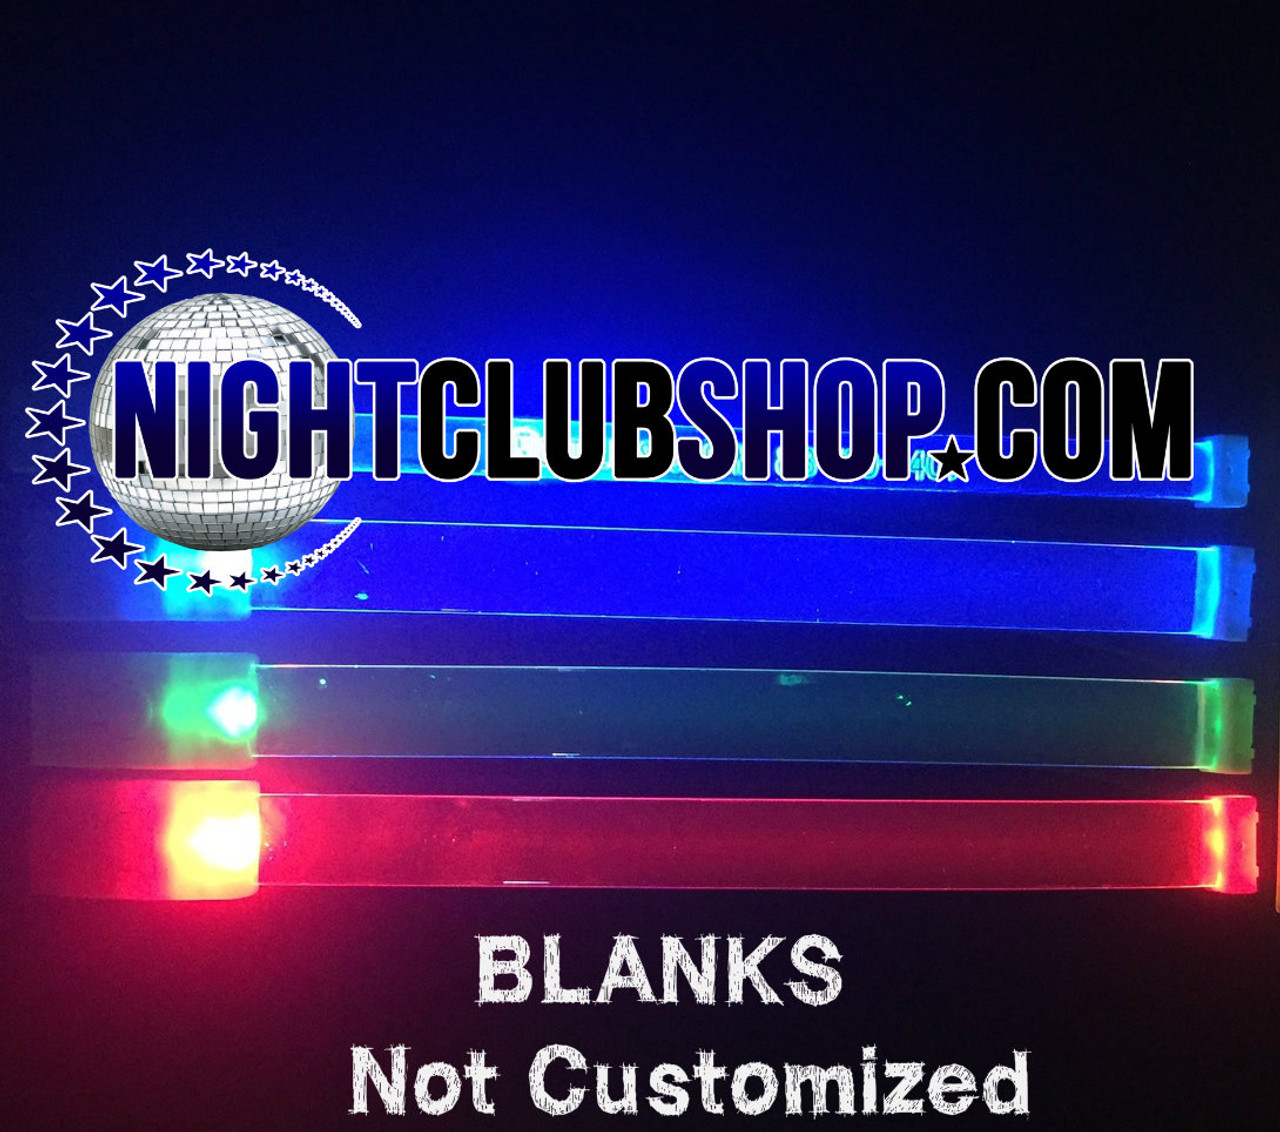 Blank,Plain,LED,Wristband,wristband,LED,bracelet,Blank,Plain,LED, wristband, wholesale, pricing, bulk, LED Bands, Band, personalized, custom, brandingLED, bride, groom, Light up, Light, Iluminated, Glow, Wristband, wrist Band, Bracelet, Band, Personalized, Custom, LED Wristband, VIP, Logo, Name, Art